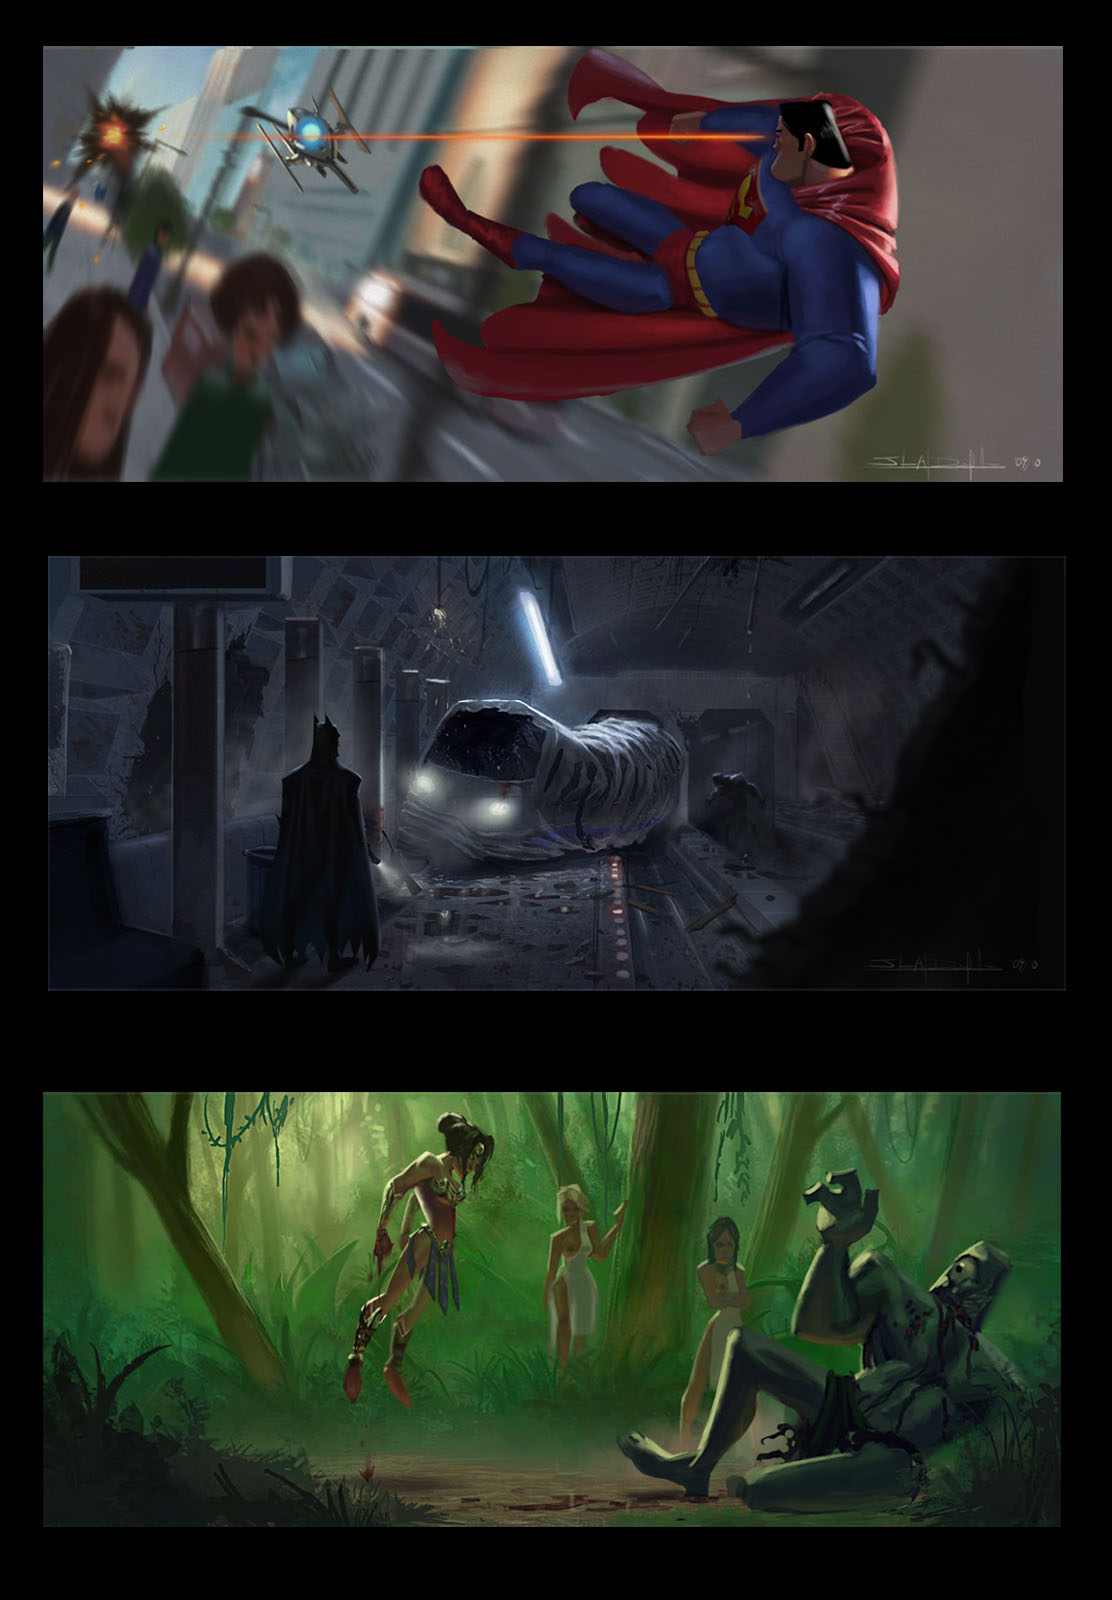 JLA CG Concepts - Prod. Paints by DanielAraya